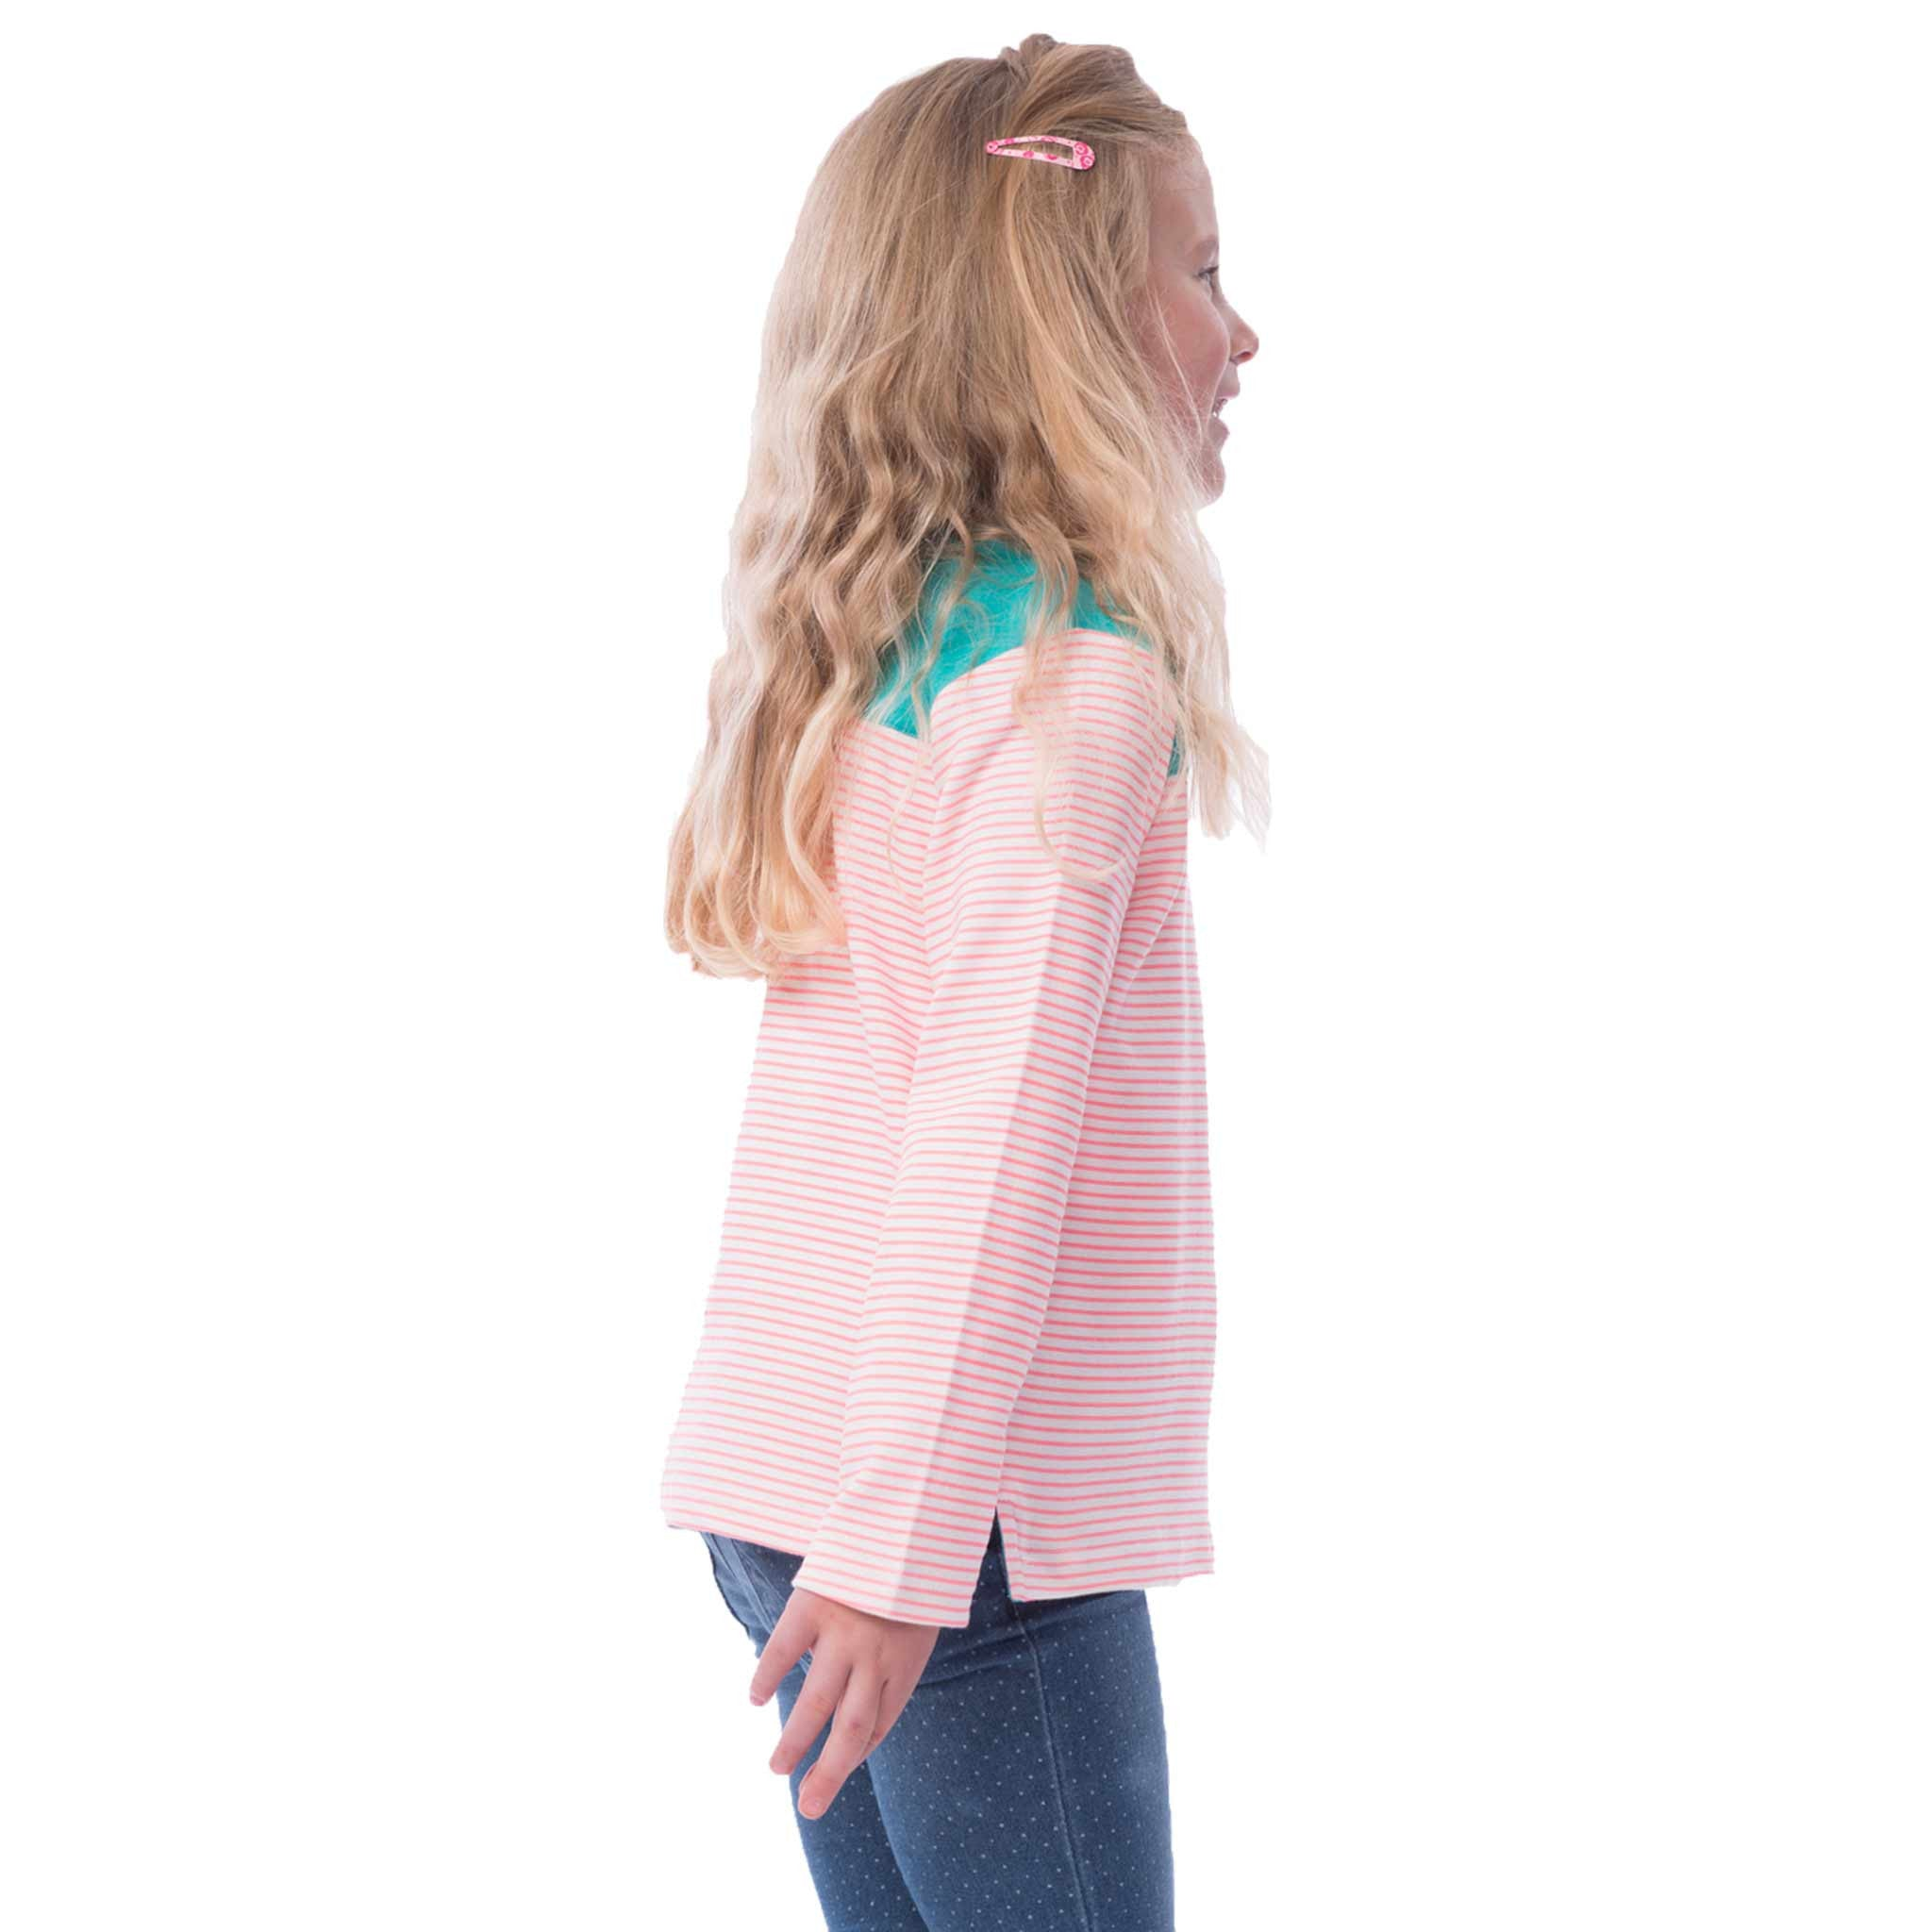 Lighthouse Daisy Girls Long Sleeve Top in Green with Pink Strip